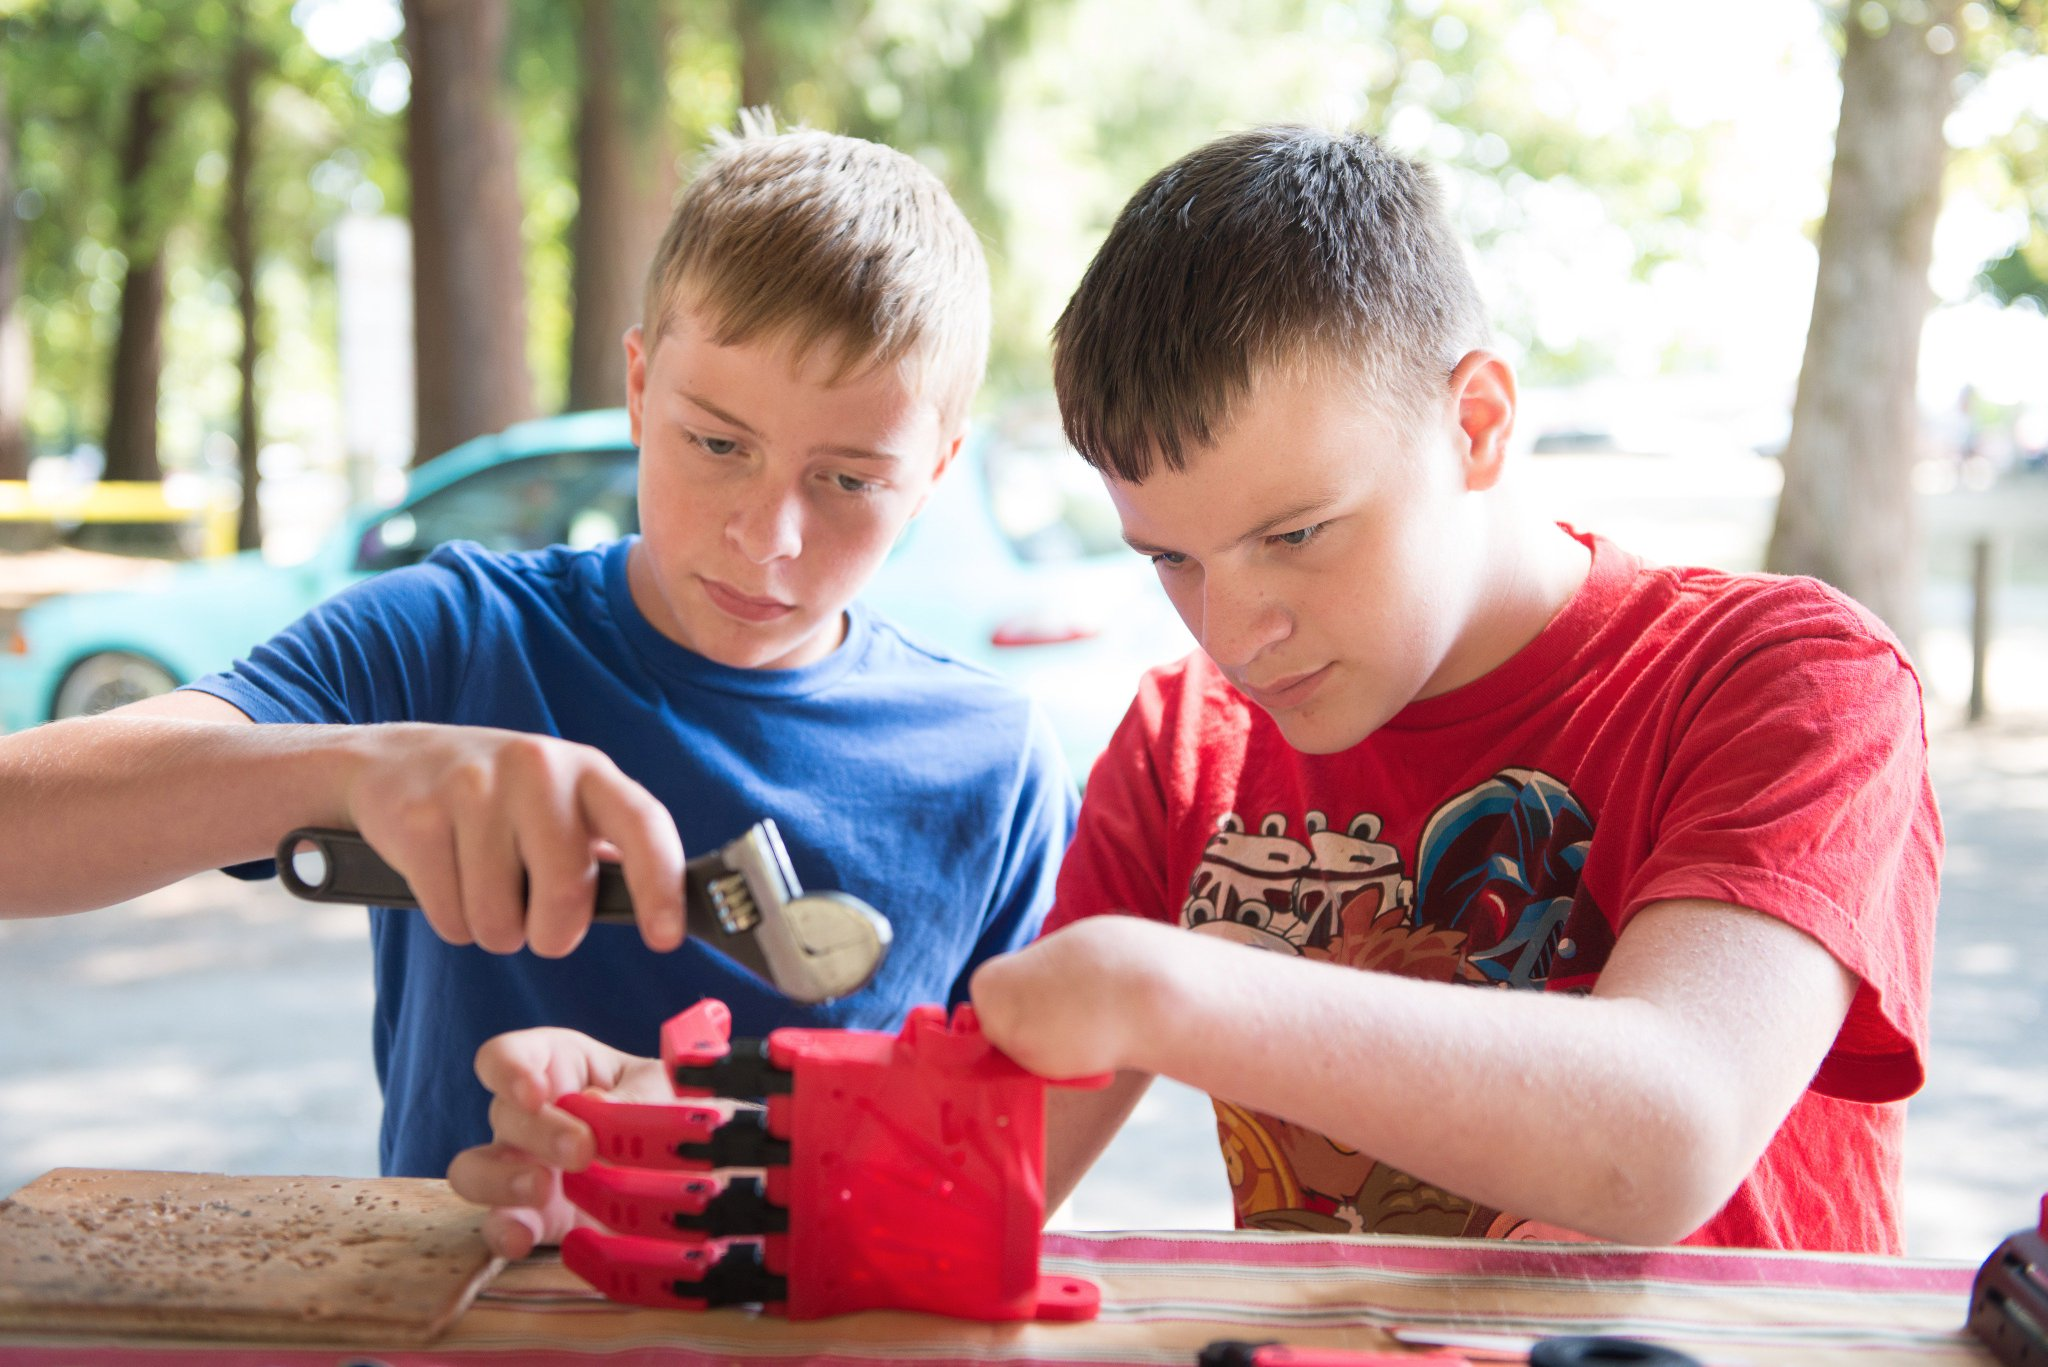 Want 2 get involved with @Enablethefuture 2 #3dprint hands & arms 4 those in need? https://t.co/egY3cz2Pn2 #JoinUs #tech4good #STEM #Maker https://t.co/BPWLTJd44A